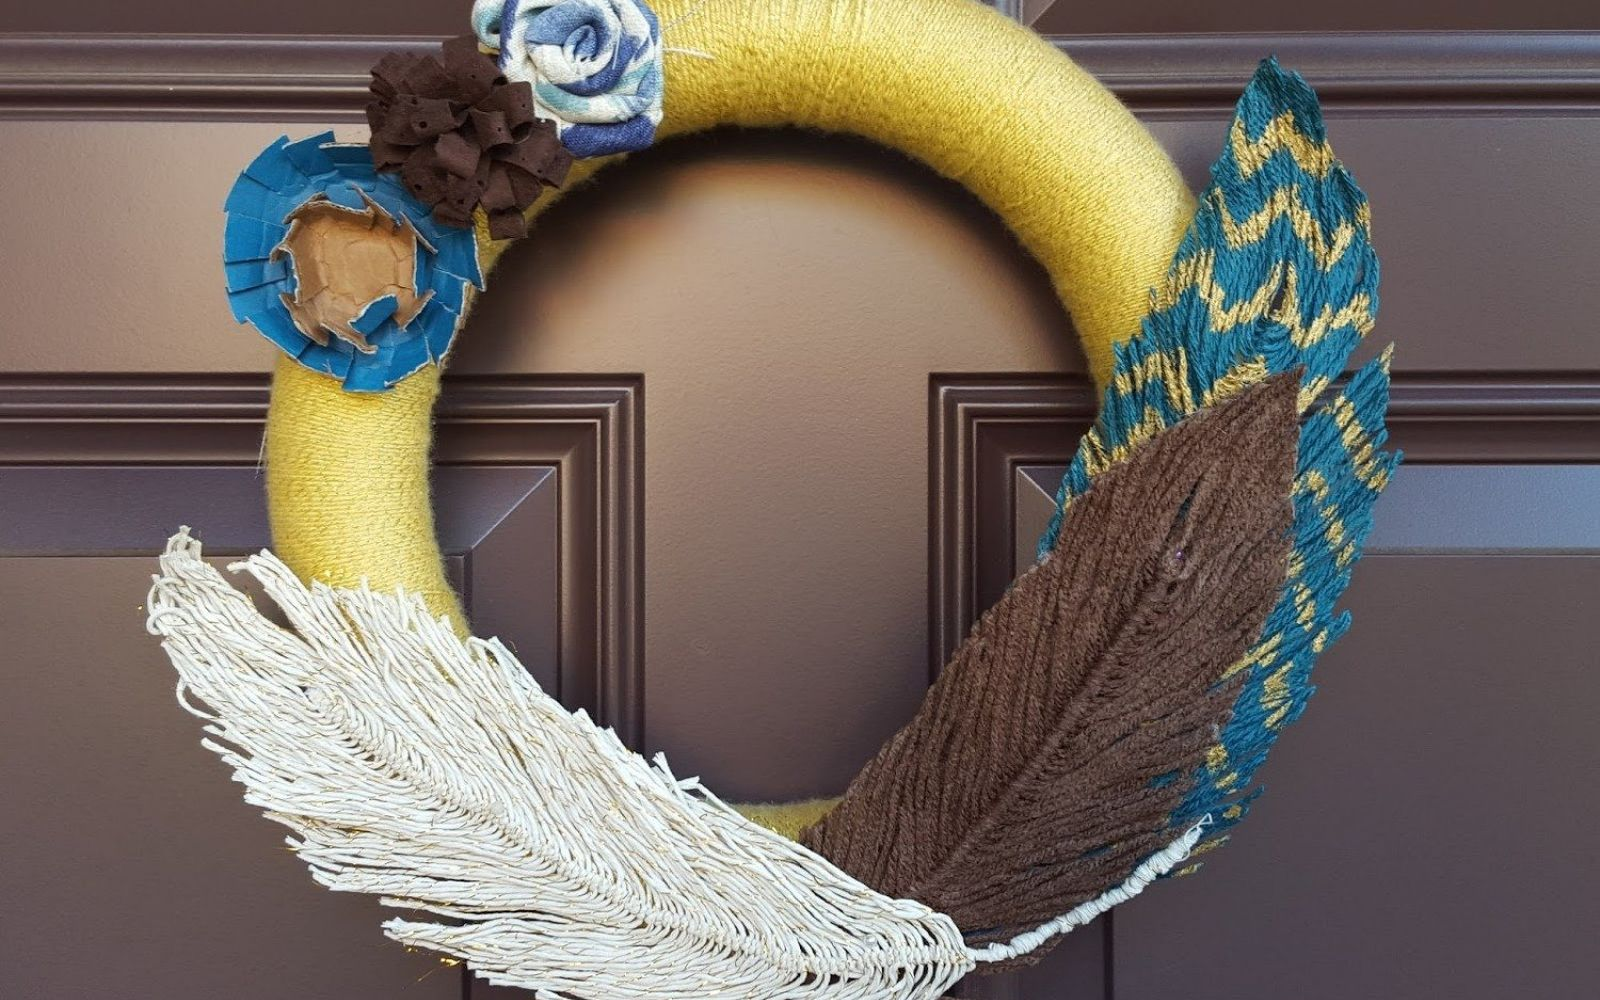 s 17 tricks to make a gorgeous wreath in half the time, Place Yarn Feathers Into Your Wreath